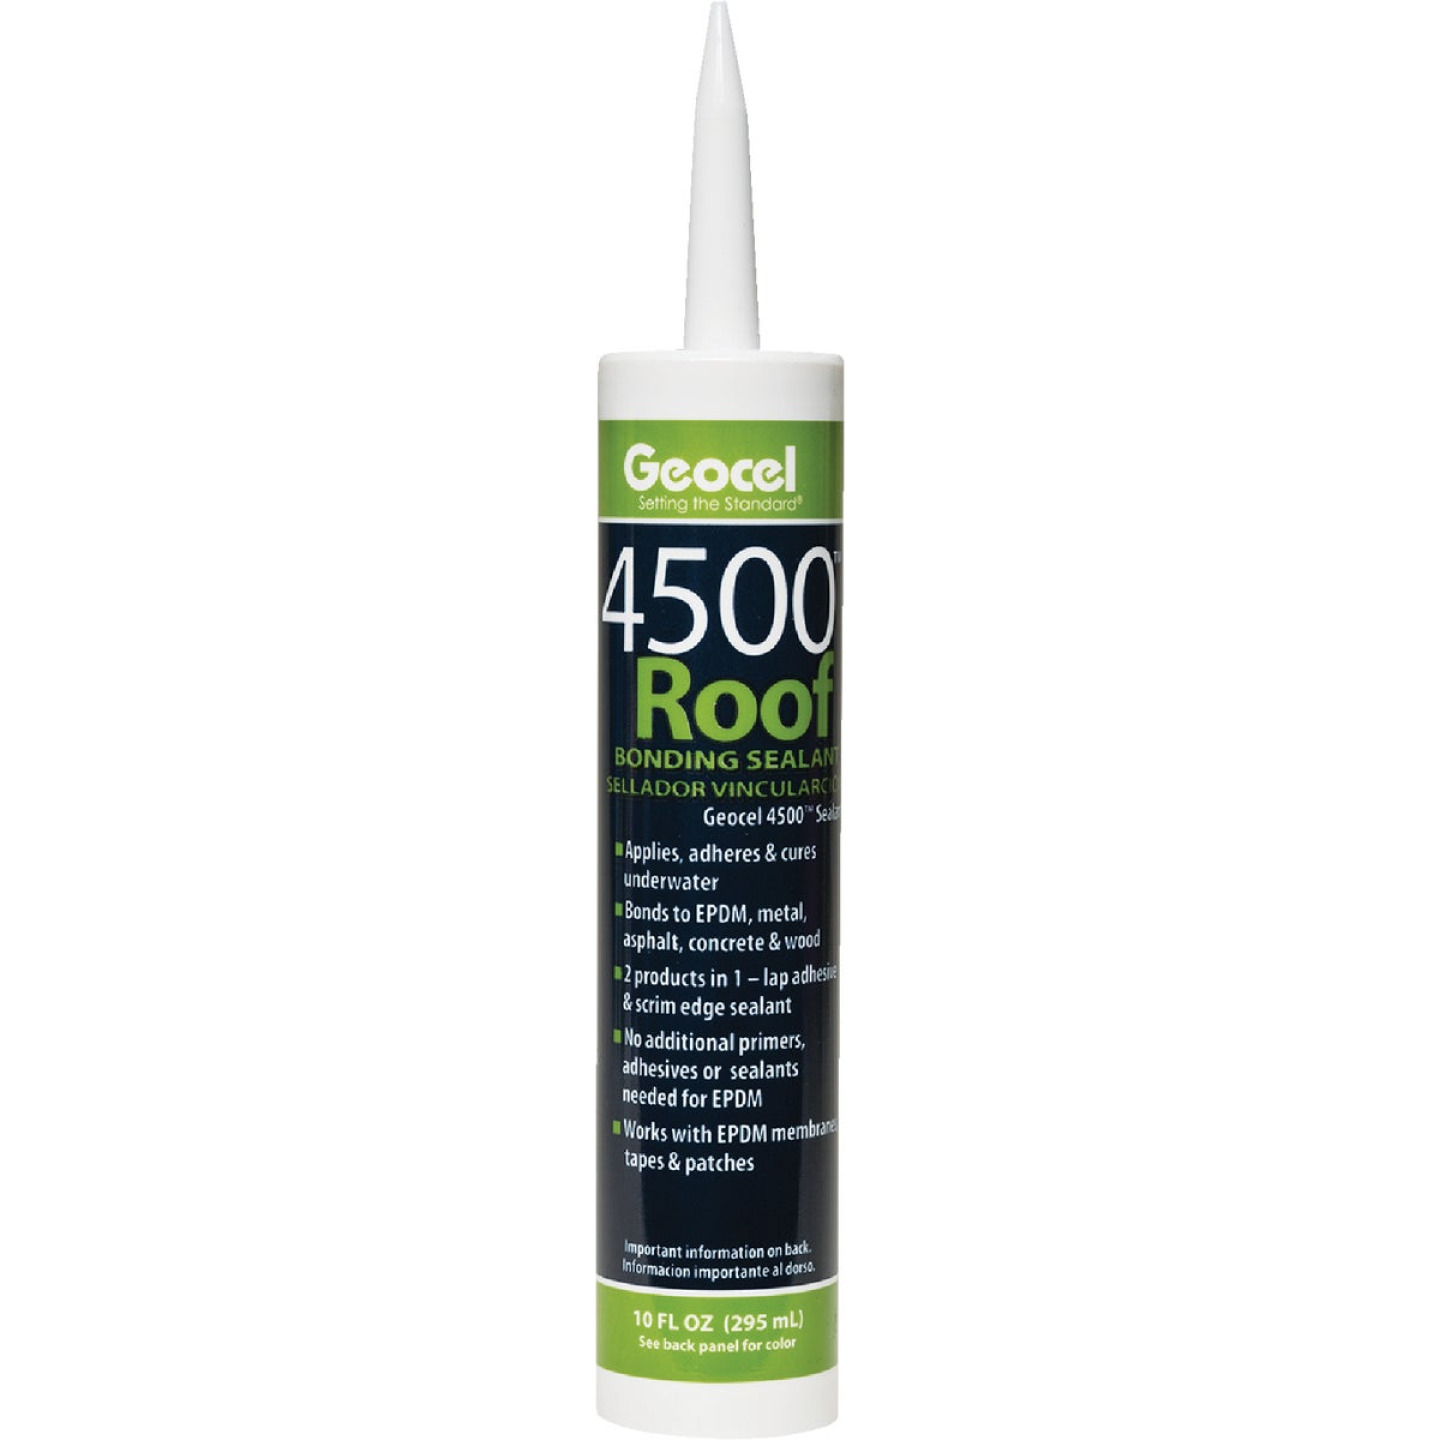 Geocel 4500 10 Oz. Roof Bonding Sealant Image 1